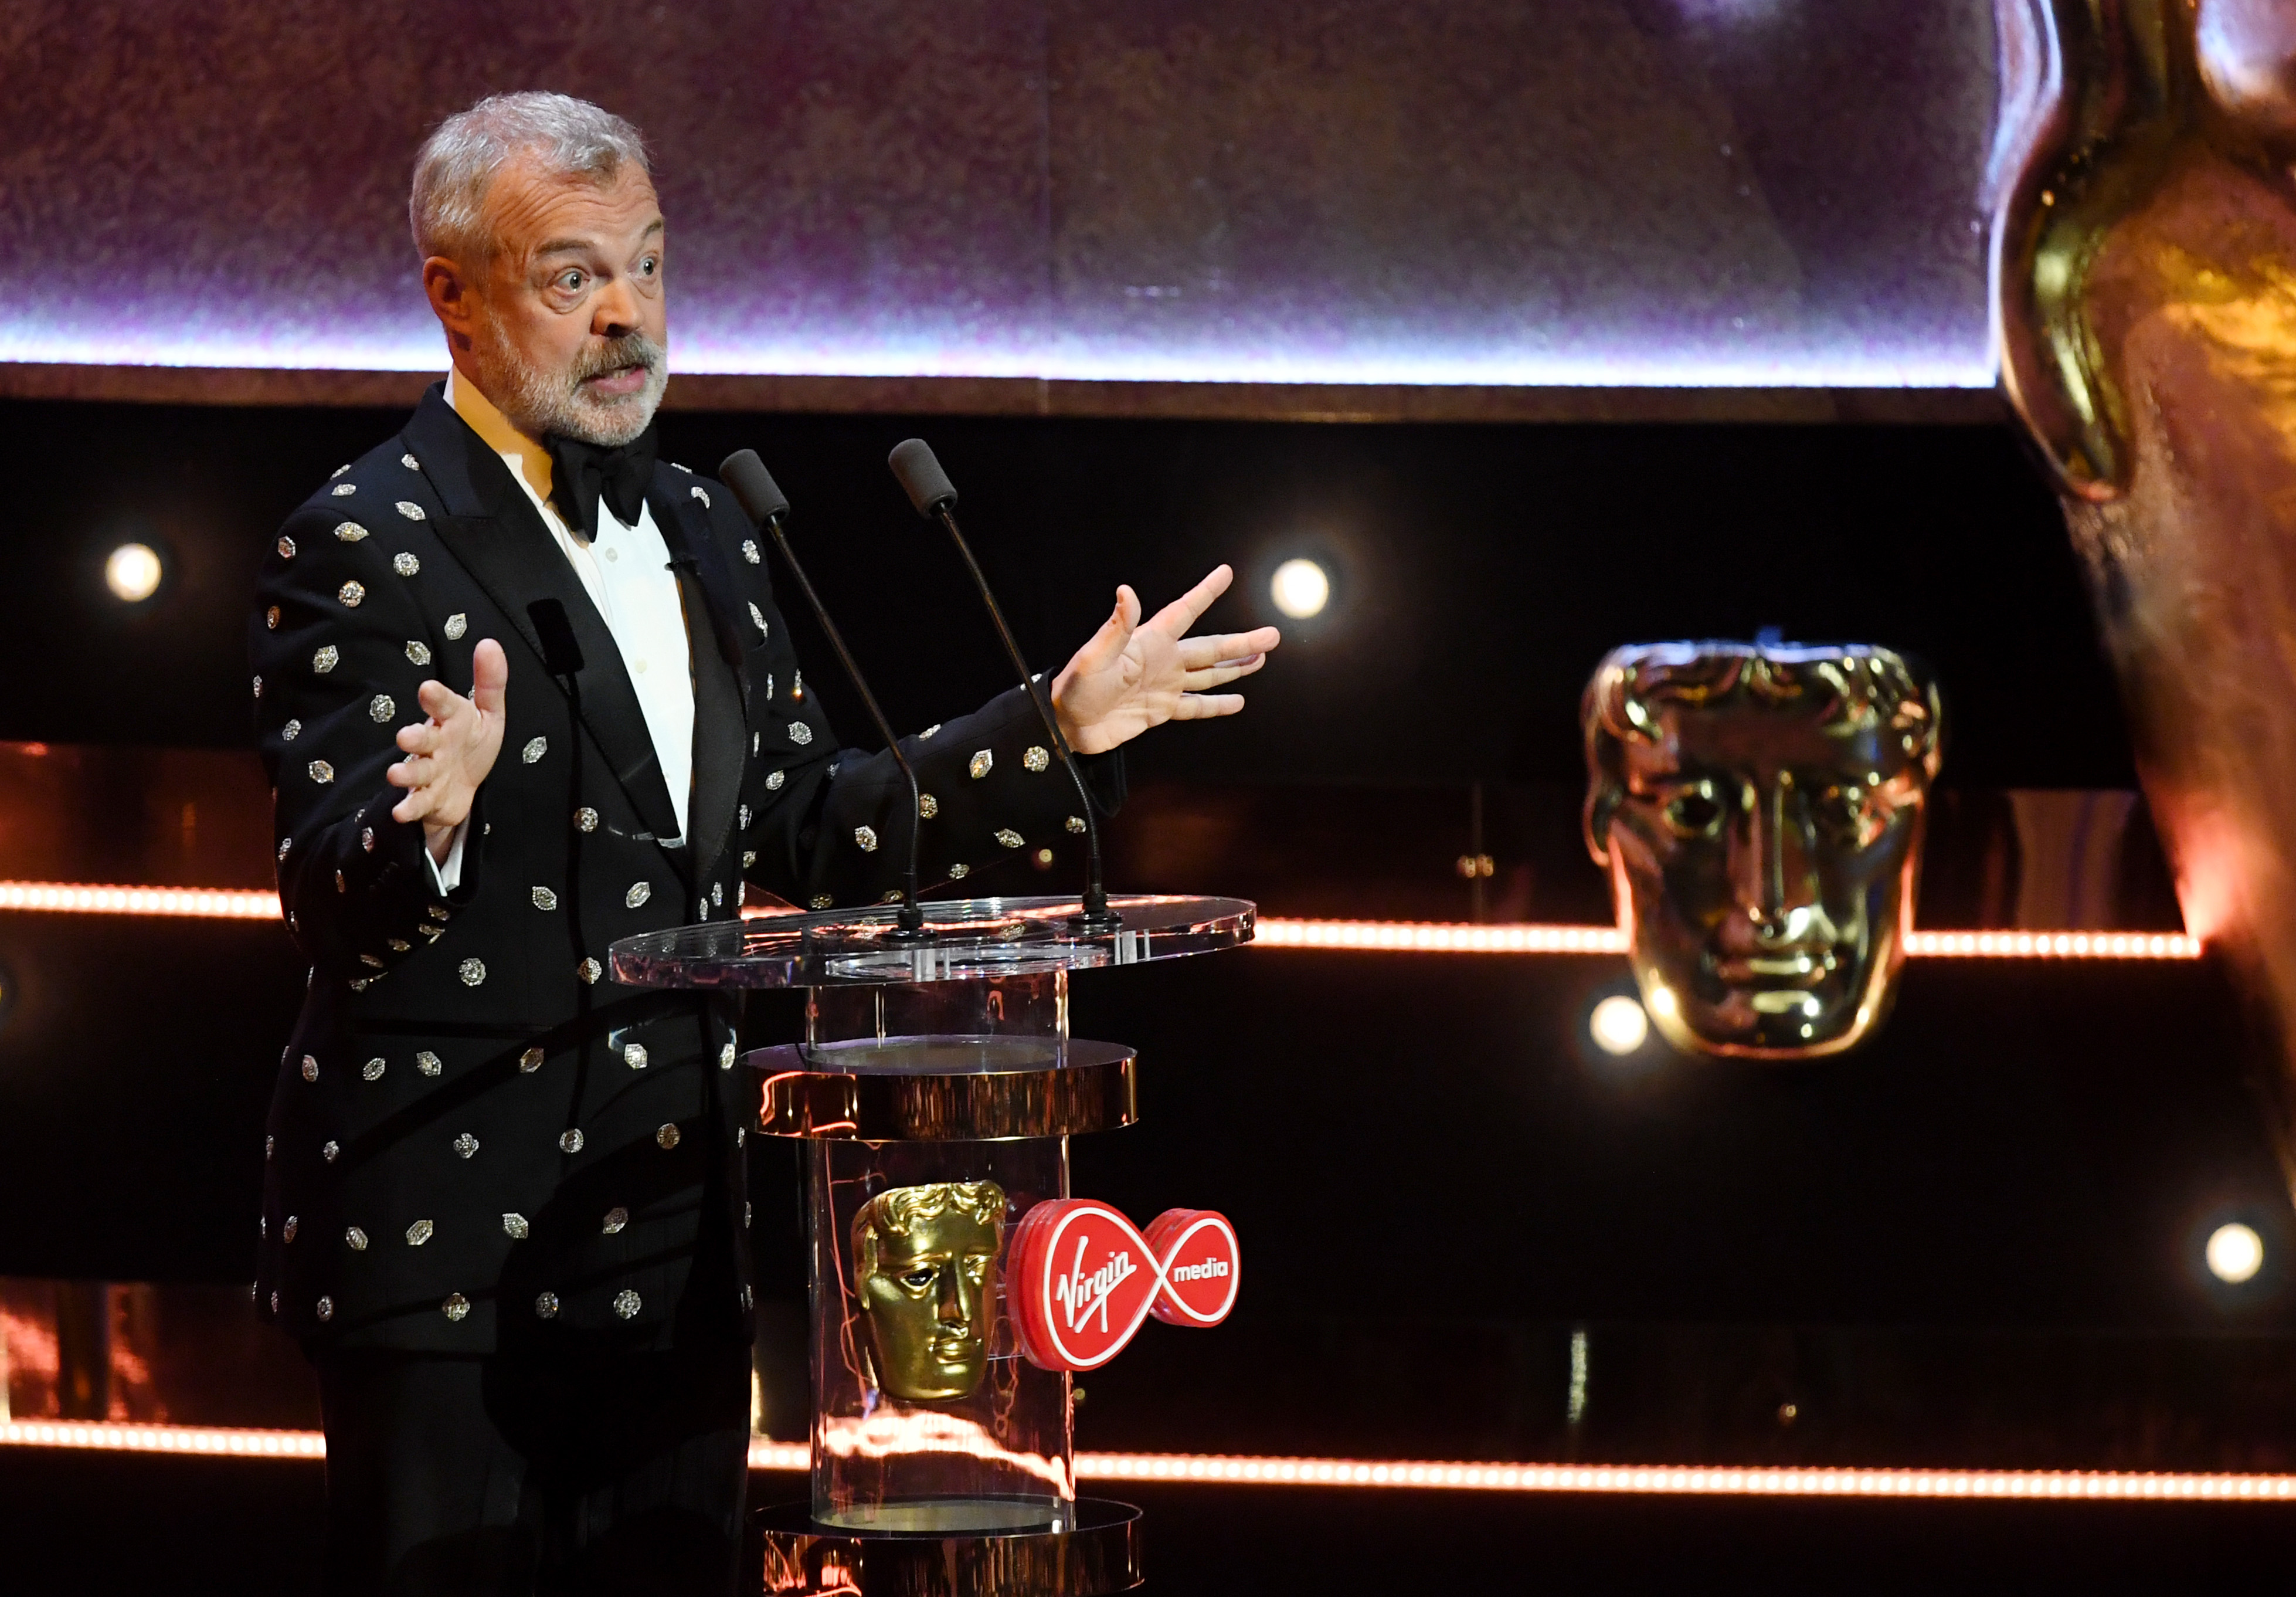 Exclusive - Premium Rates Apply. Outside all subscription deals. Please speak to your account manager for details and pricingMandatory Credit: Photo by James Veysey/BAFTA/Shutterstock (10234191f) Graham Norton British Academy Television Awards, Ceremony, Royal Festival Hall, London, UK - 12 May 2019